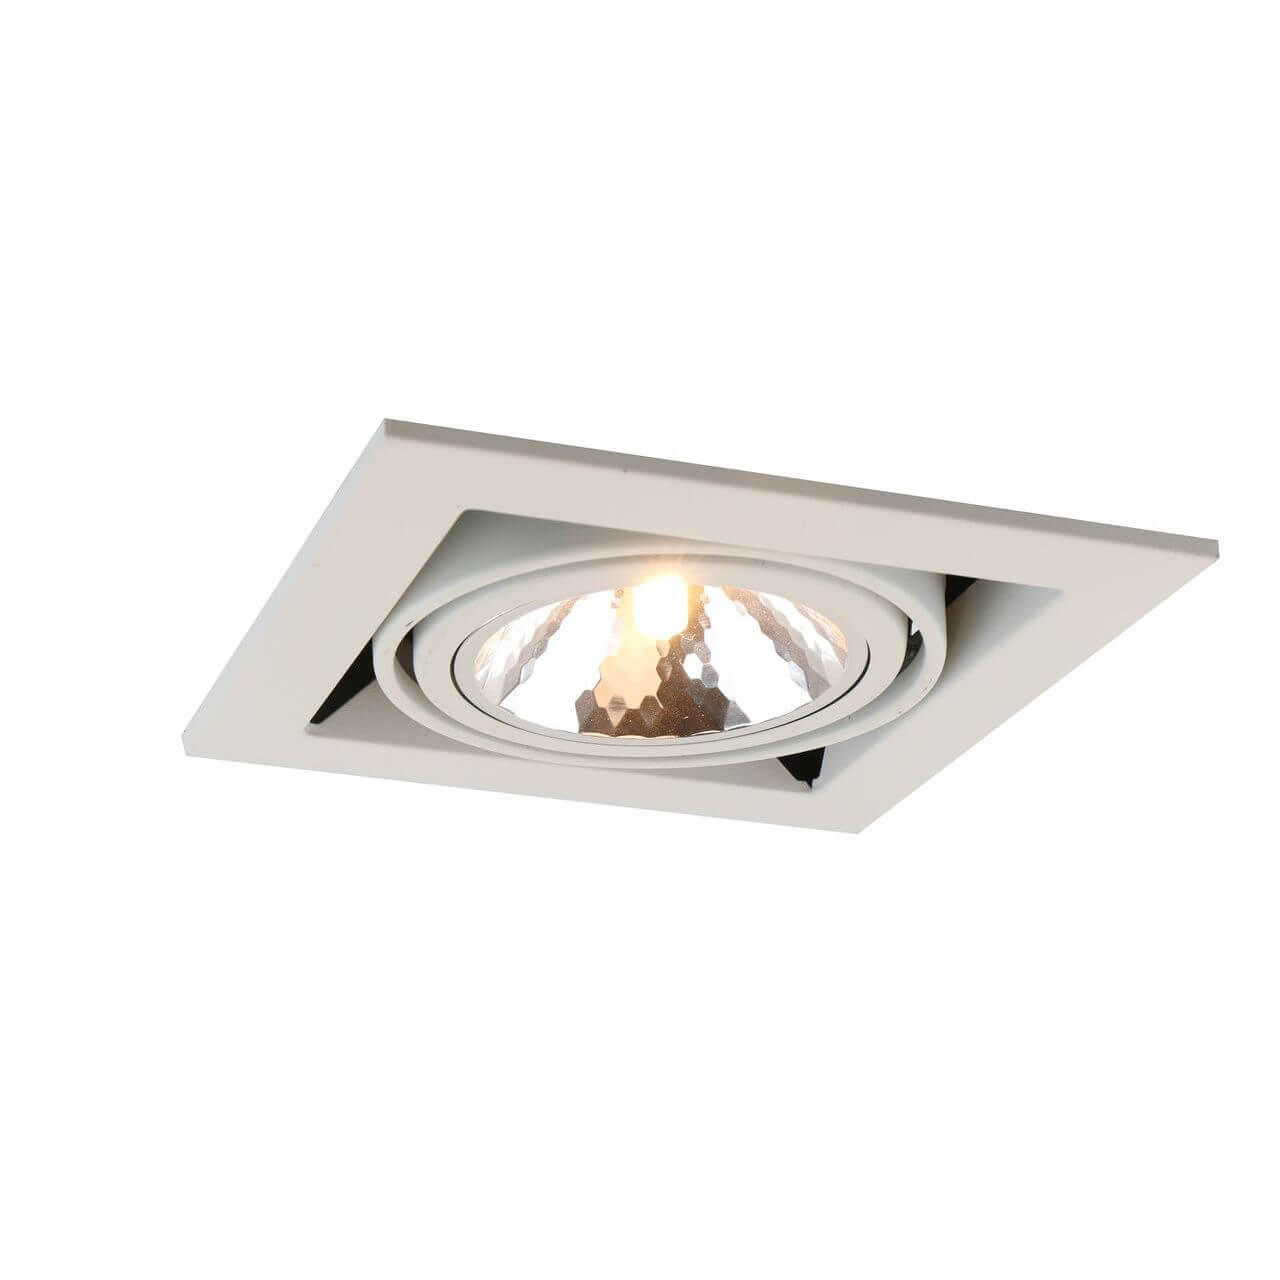 Светильник Arte Lamp A5949PL-1WH Cardani Semplice WH